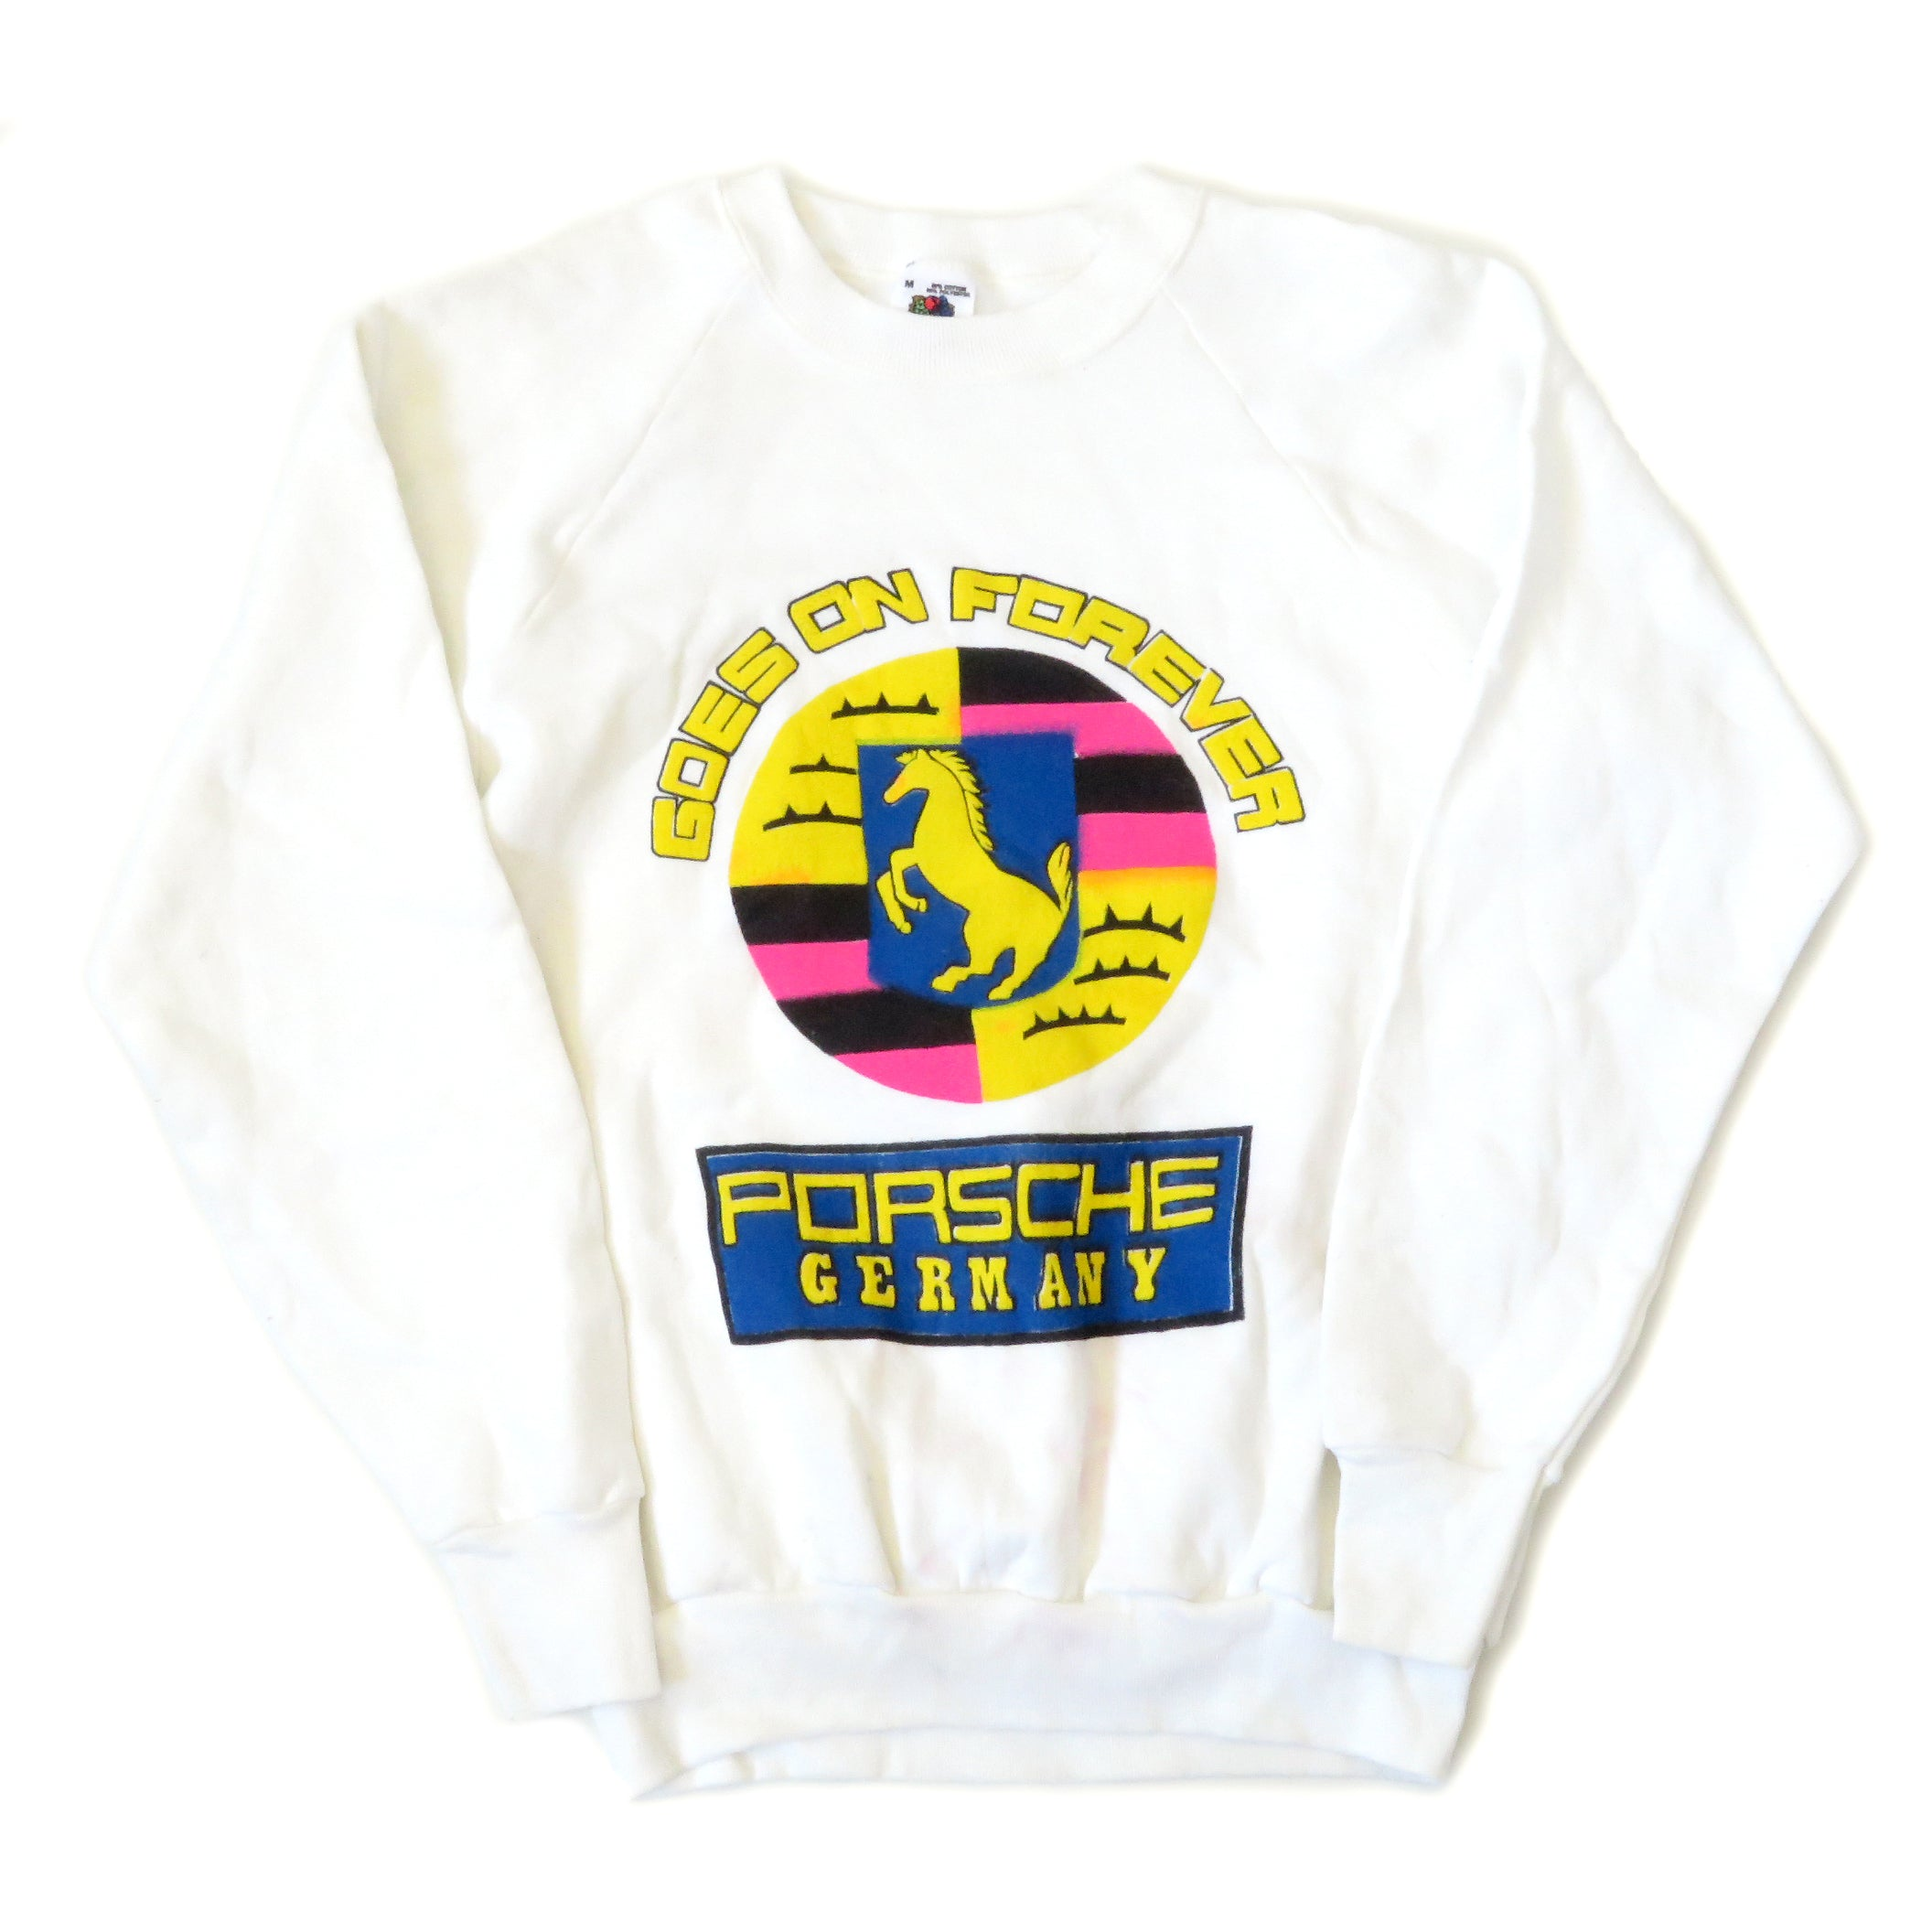 Vintage 1980's Porsche Germany Goes On Forever Sweatshirt Sz M